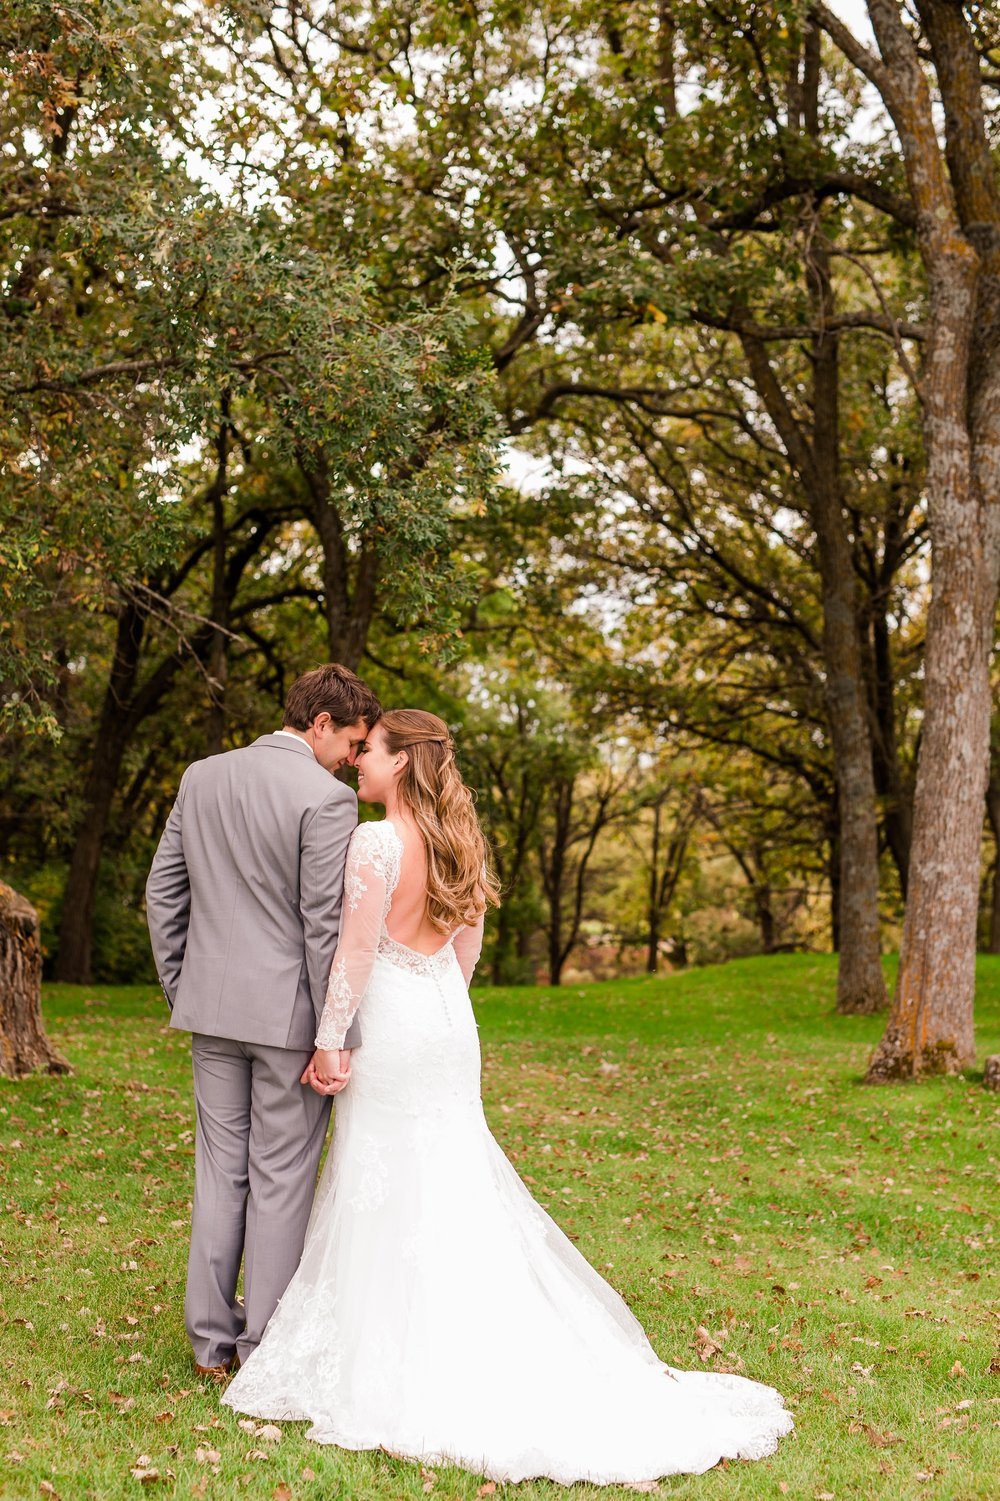 AmberLangerudPhotography_Fair Hills Resort Lakeside Wedding in Minnesota_3440.jpg